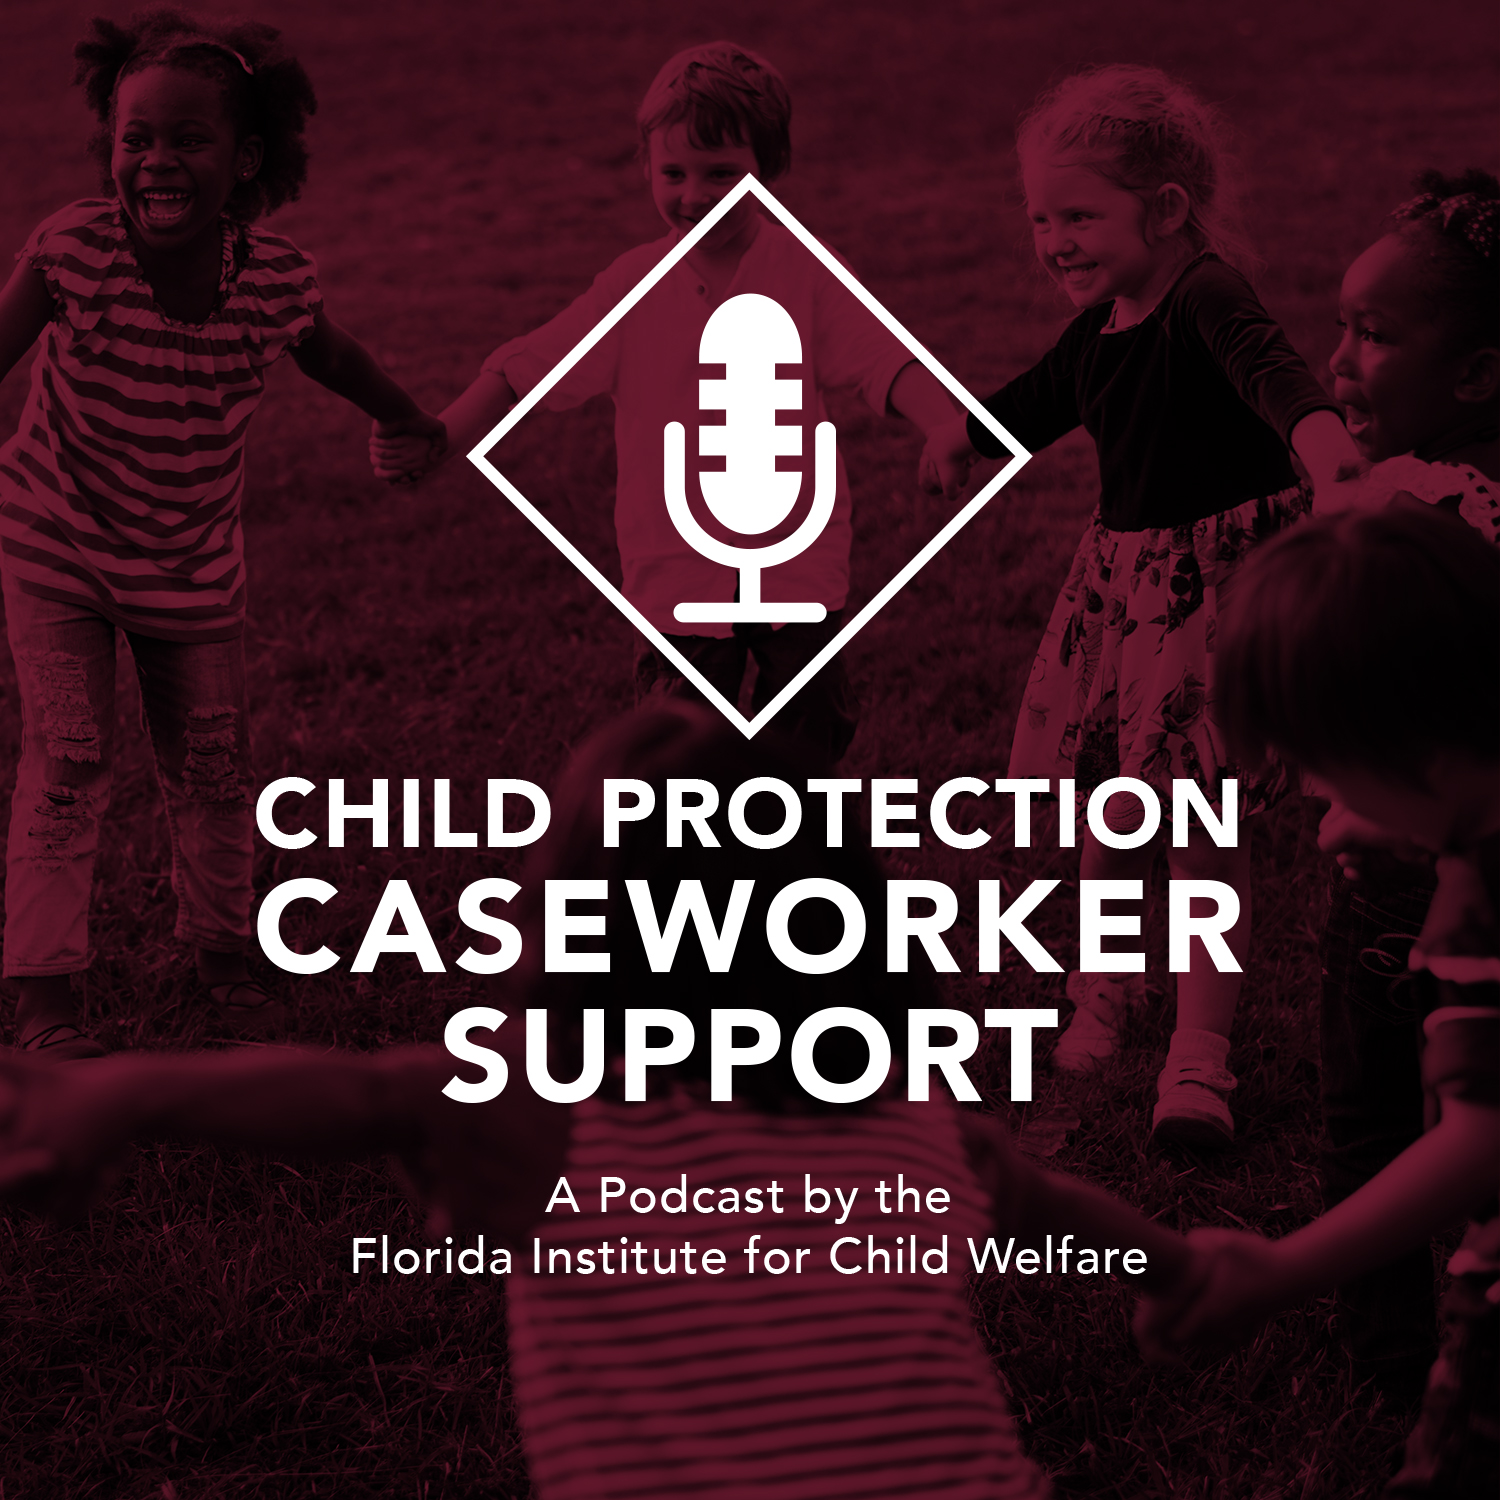 Child Protection Caseworker Support